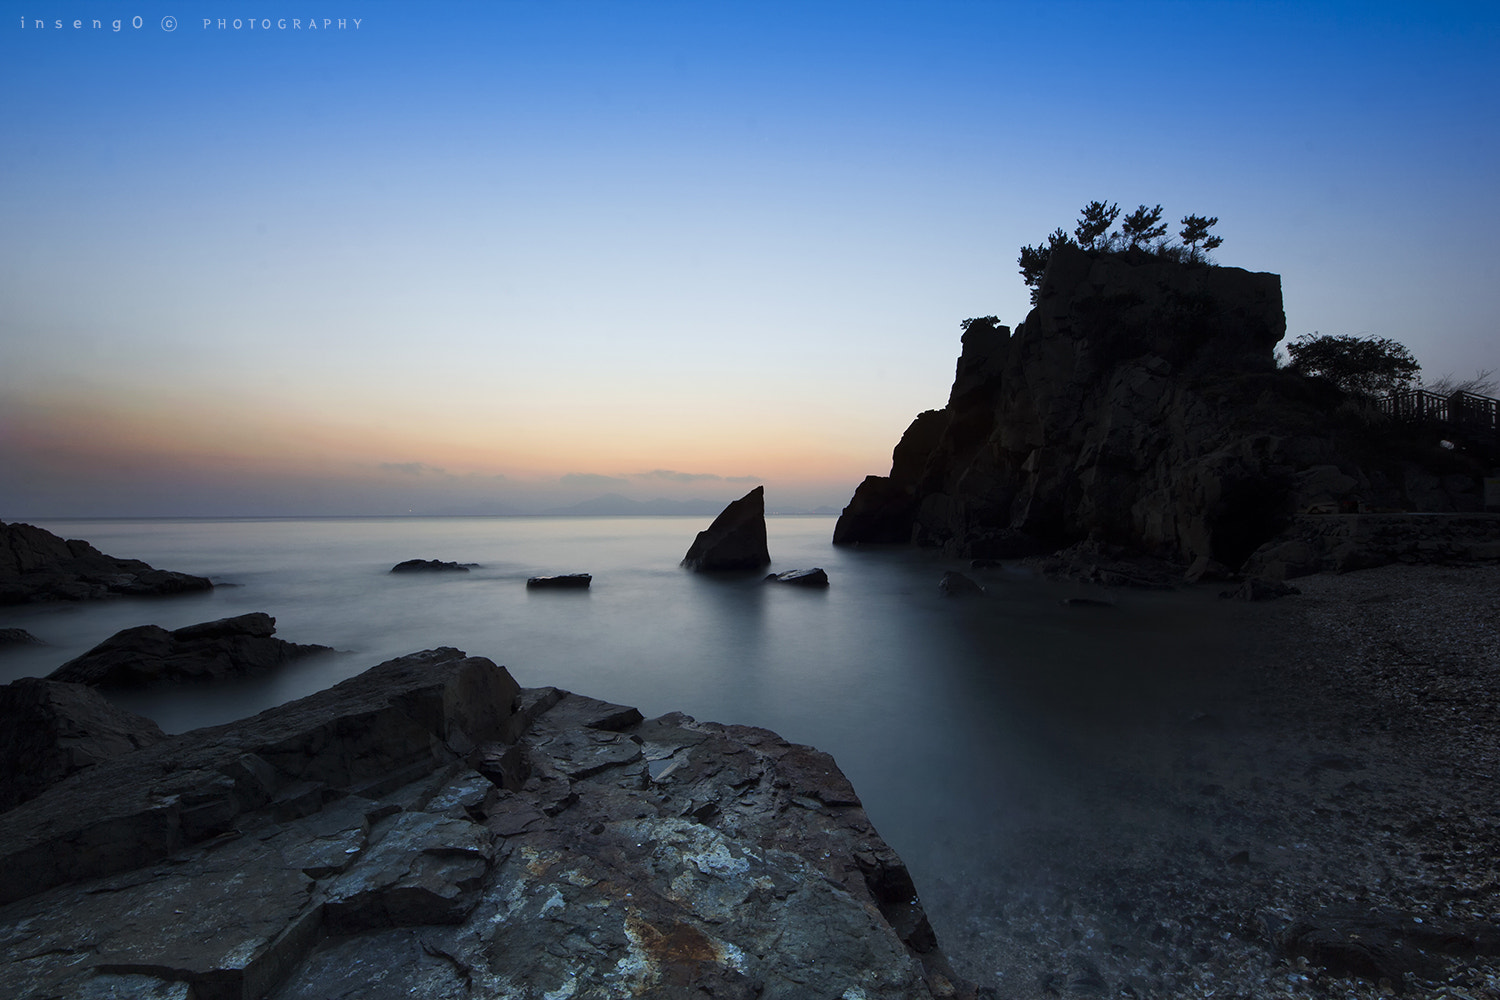 Photograph Twilight by chan-wook Kim on 500px